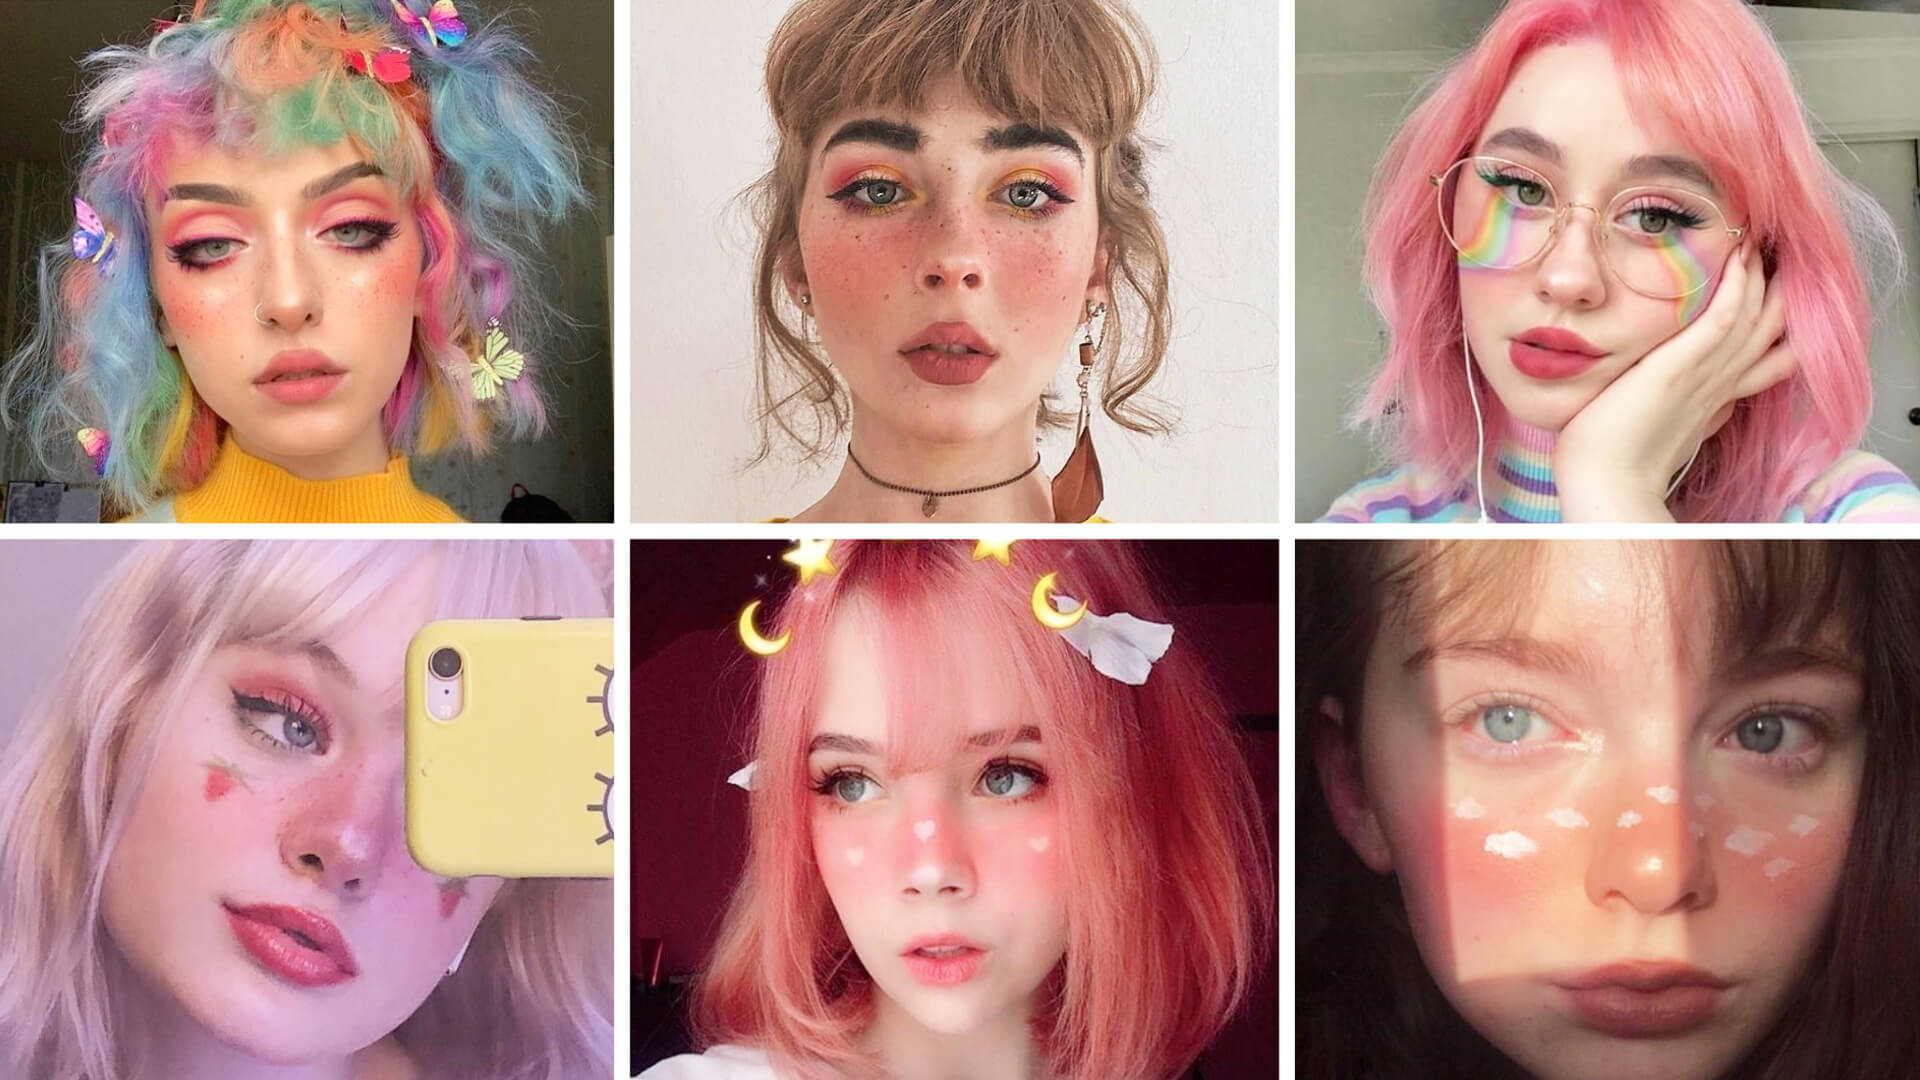 Creative and a little bit edgy Soft Girl makeup ideas if you're aiming for a Kidcore, Kawaii, or more EGirl vibe